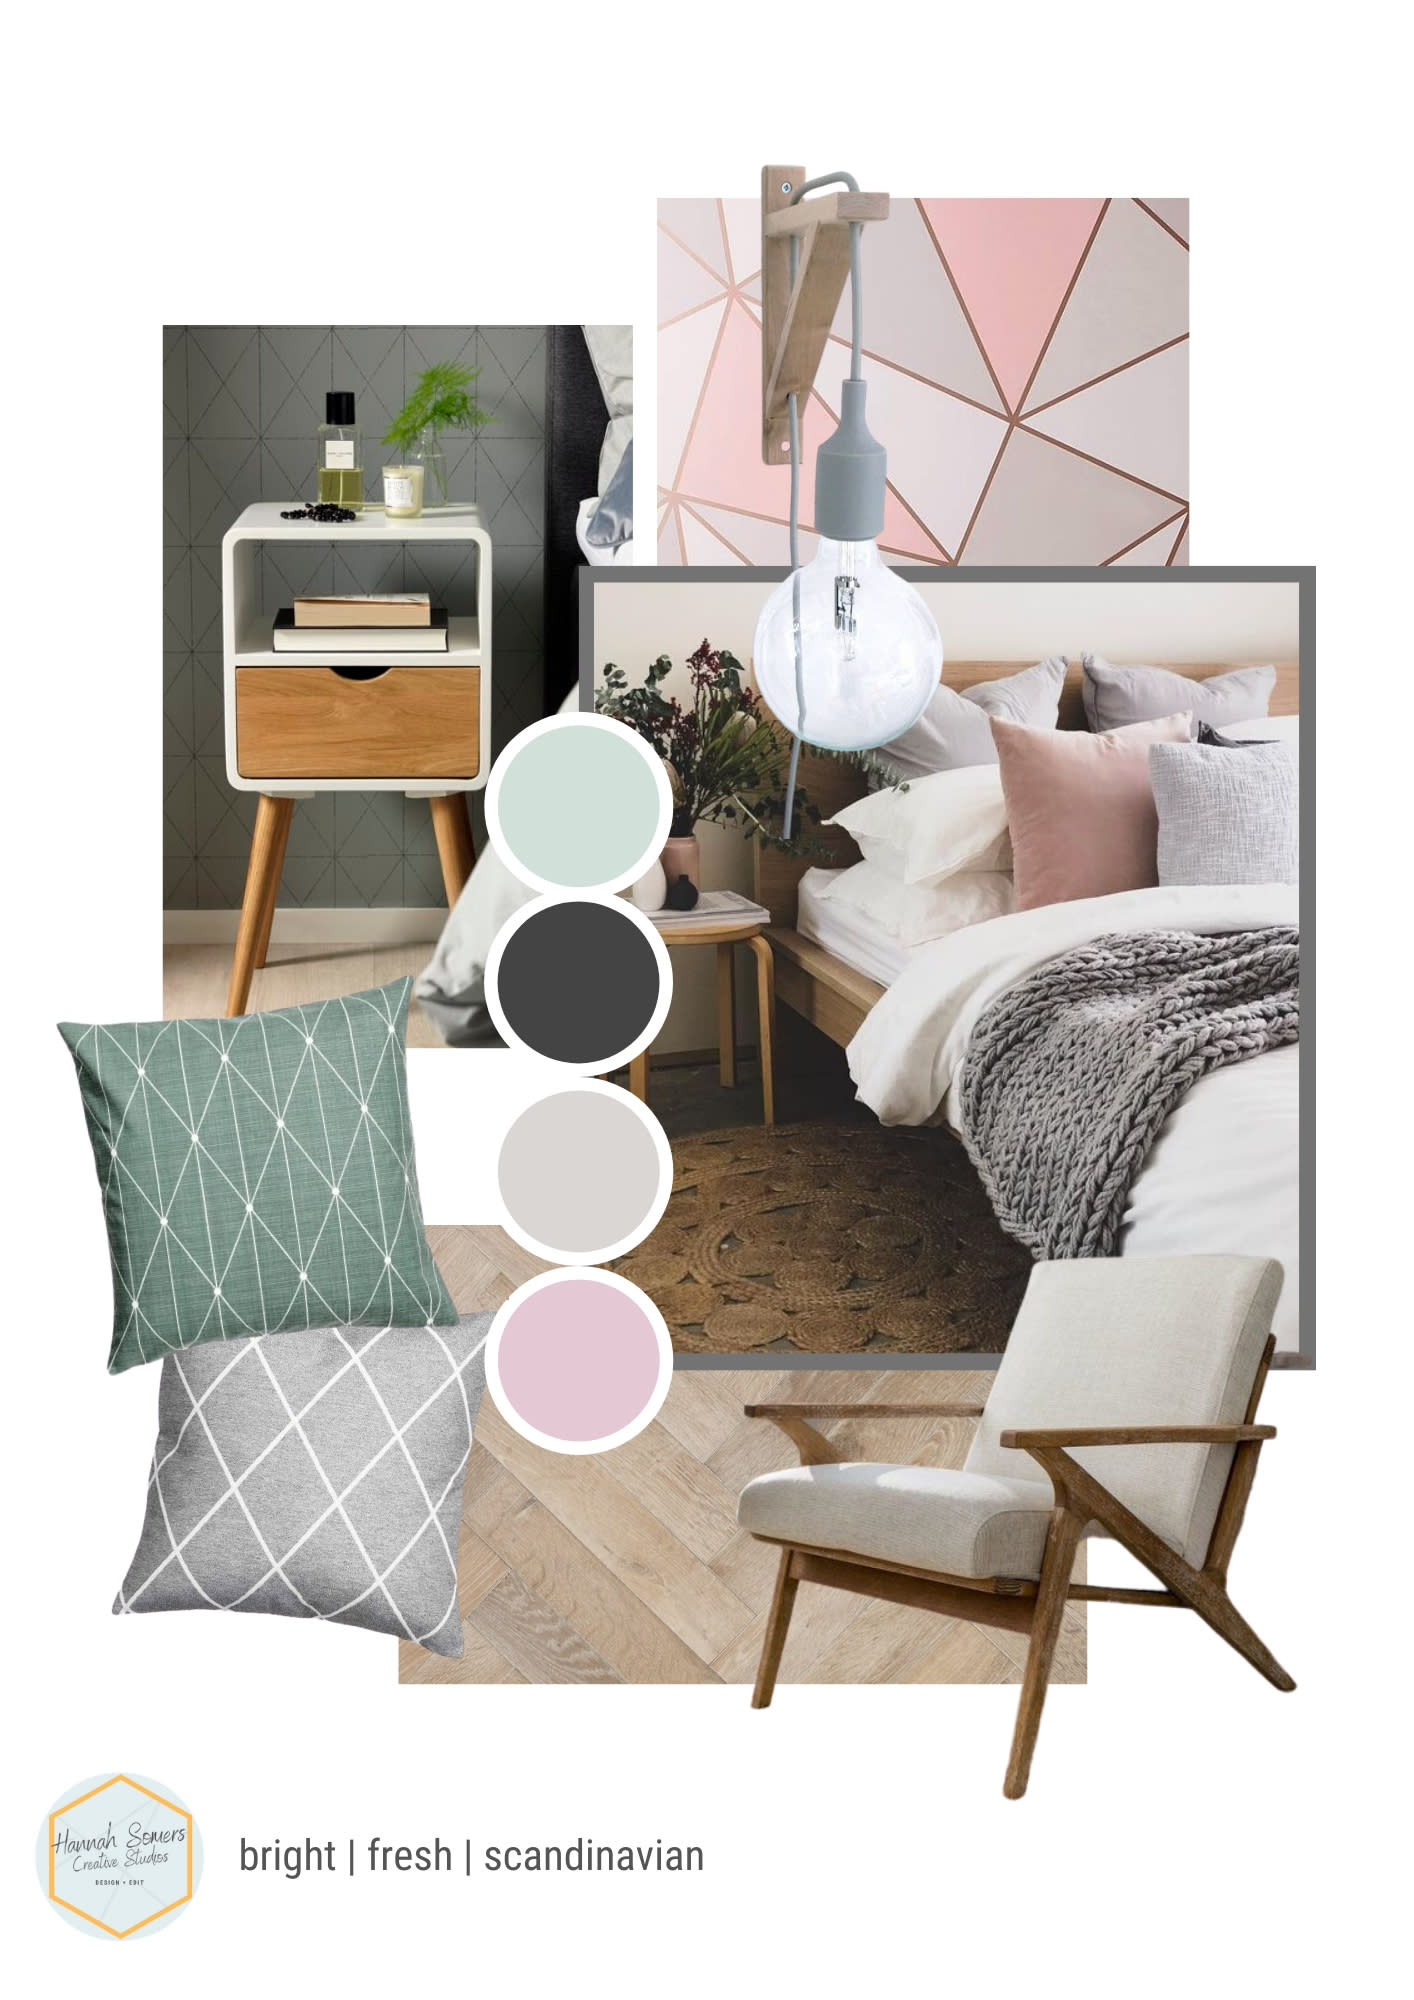 Create An Interior Design Mood Board For Your Room By Hannahsomerscs Fiverr